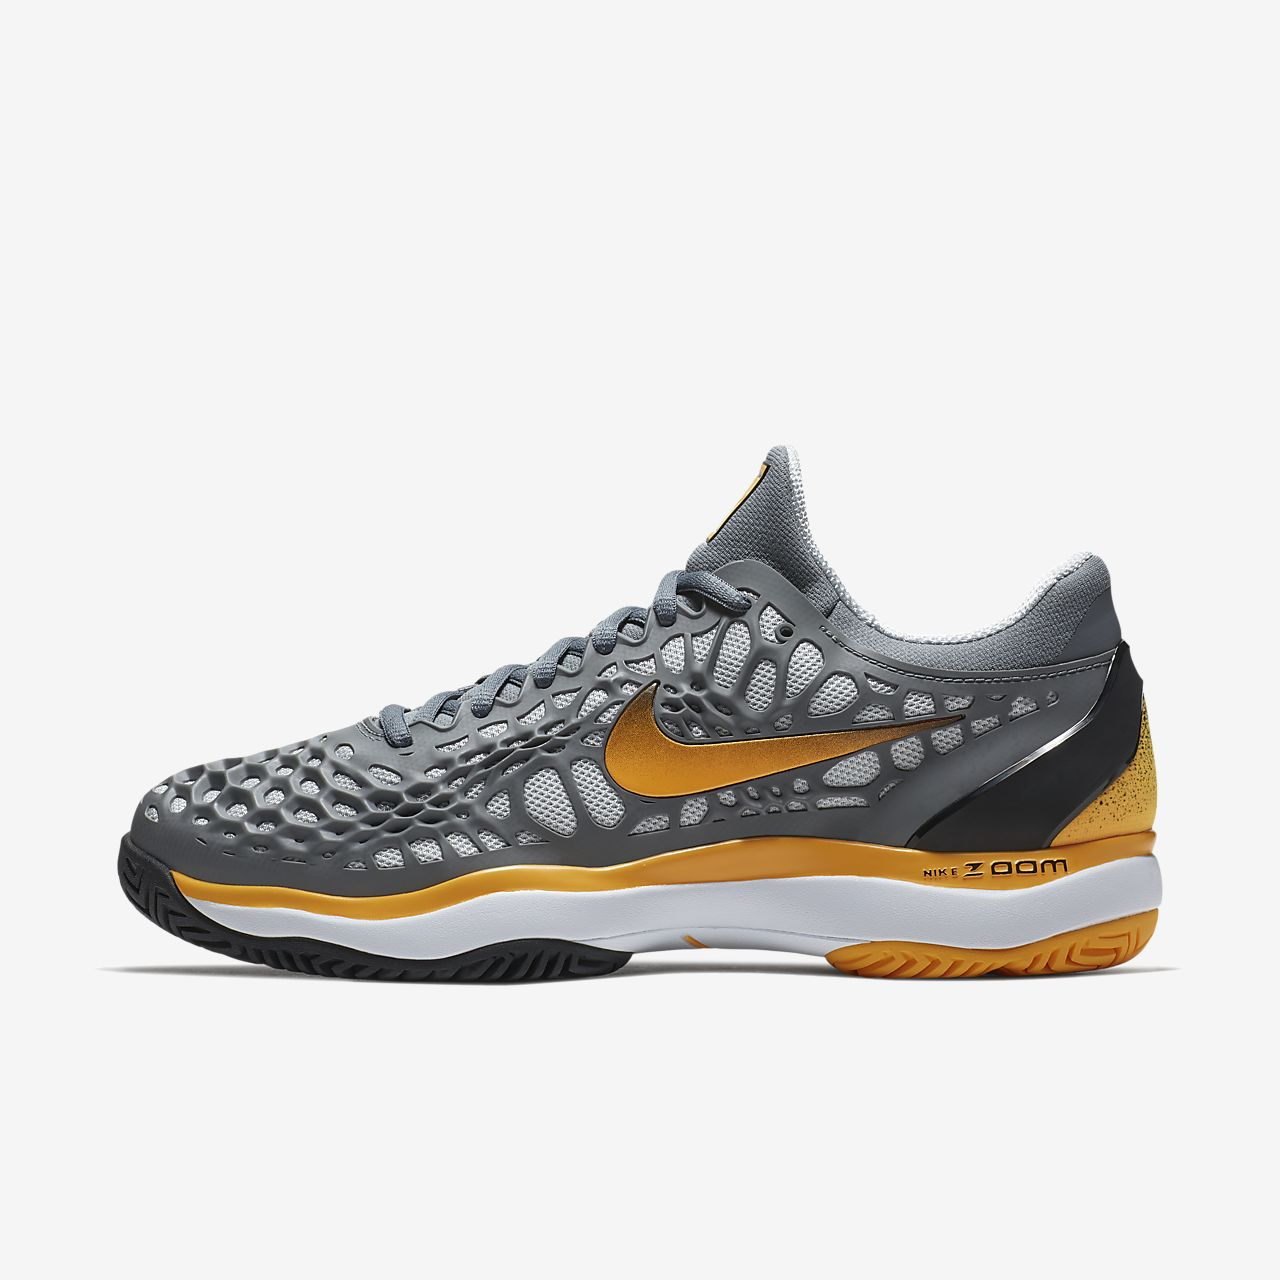 new arrival 800a8 262a1 ... Nike Zoom Cage 3 HC Mens Tennis Shoe